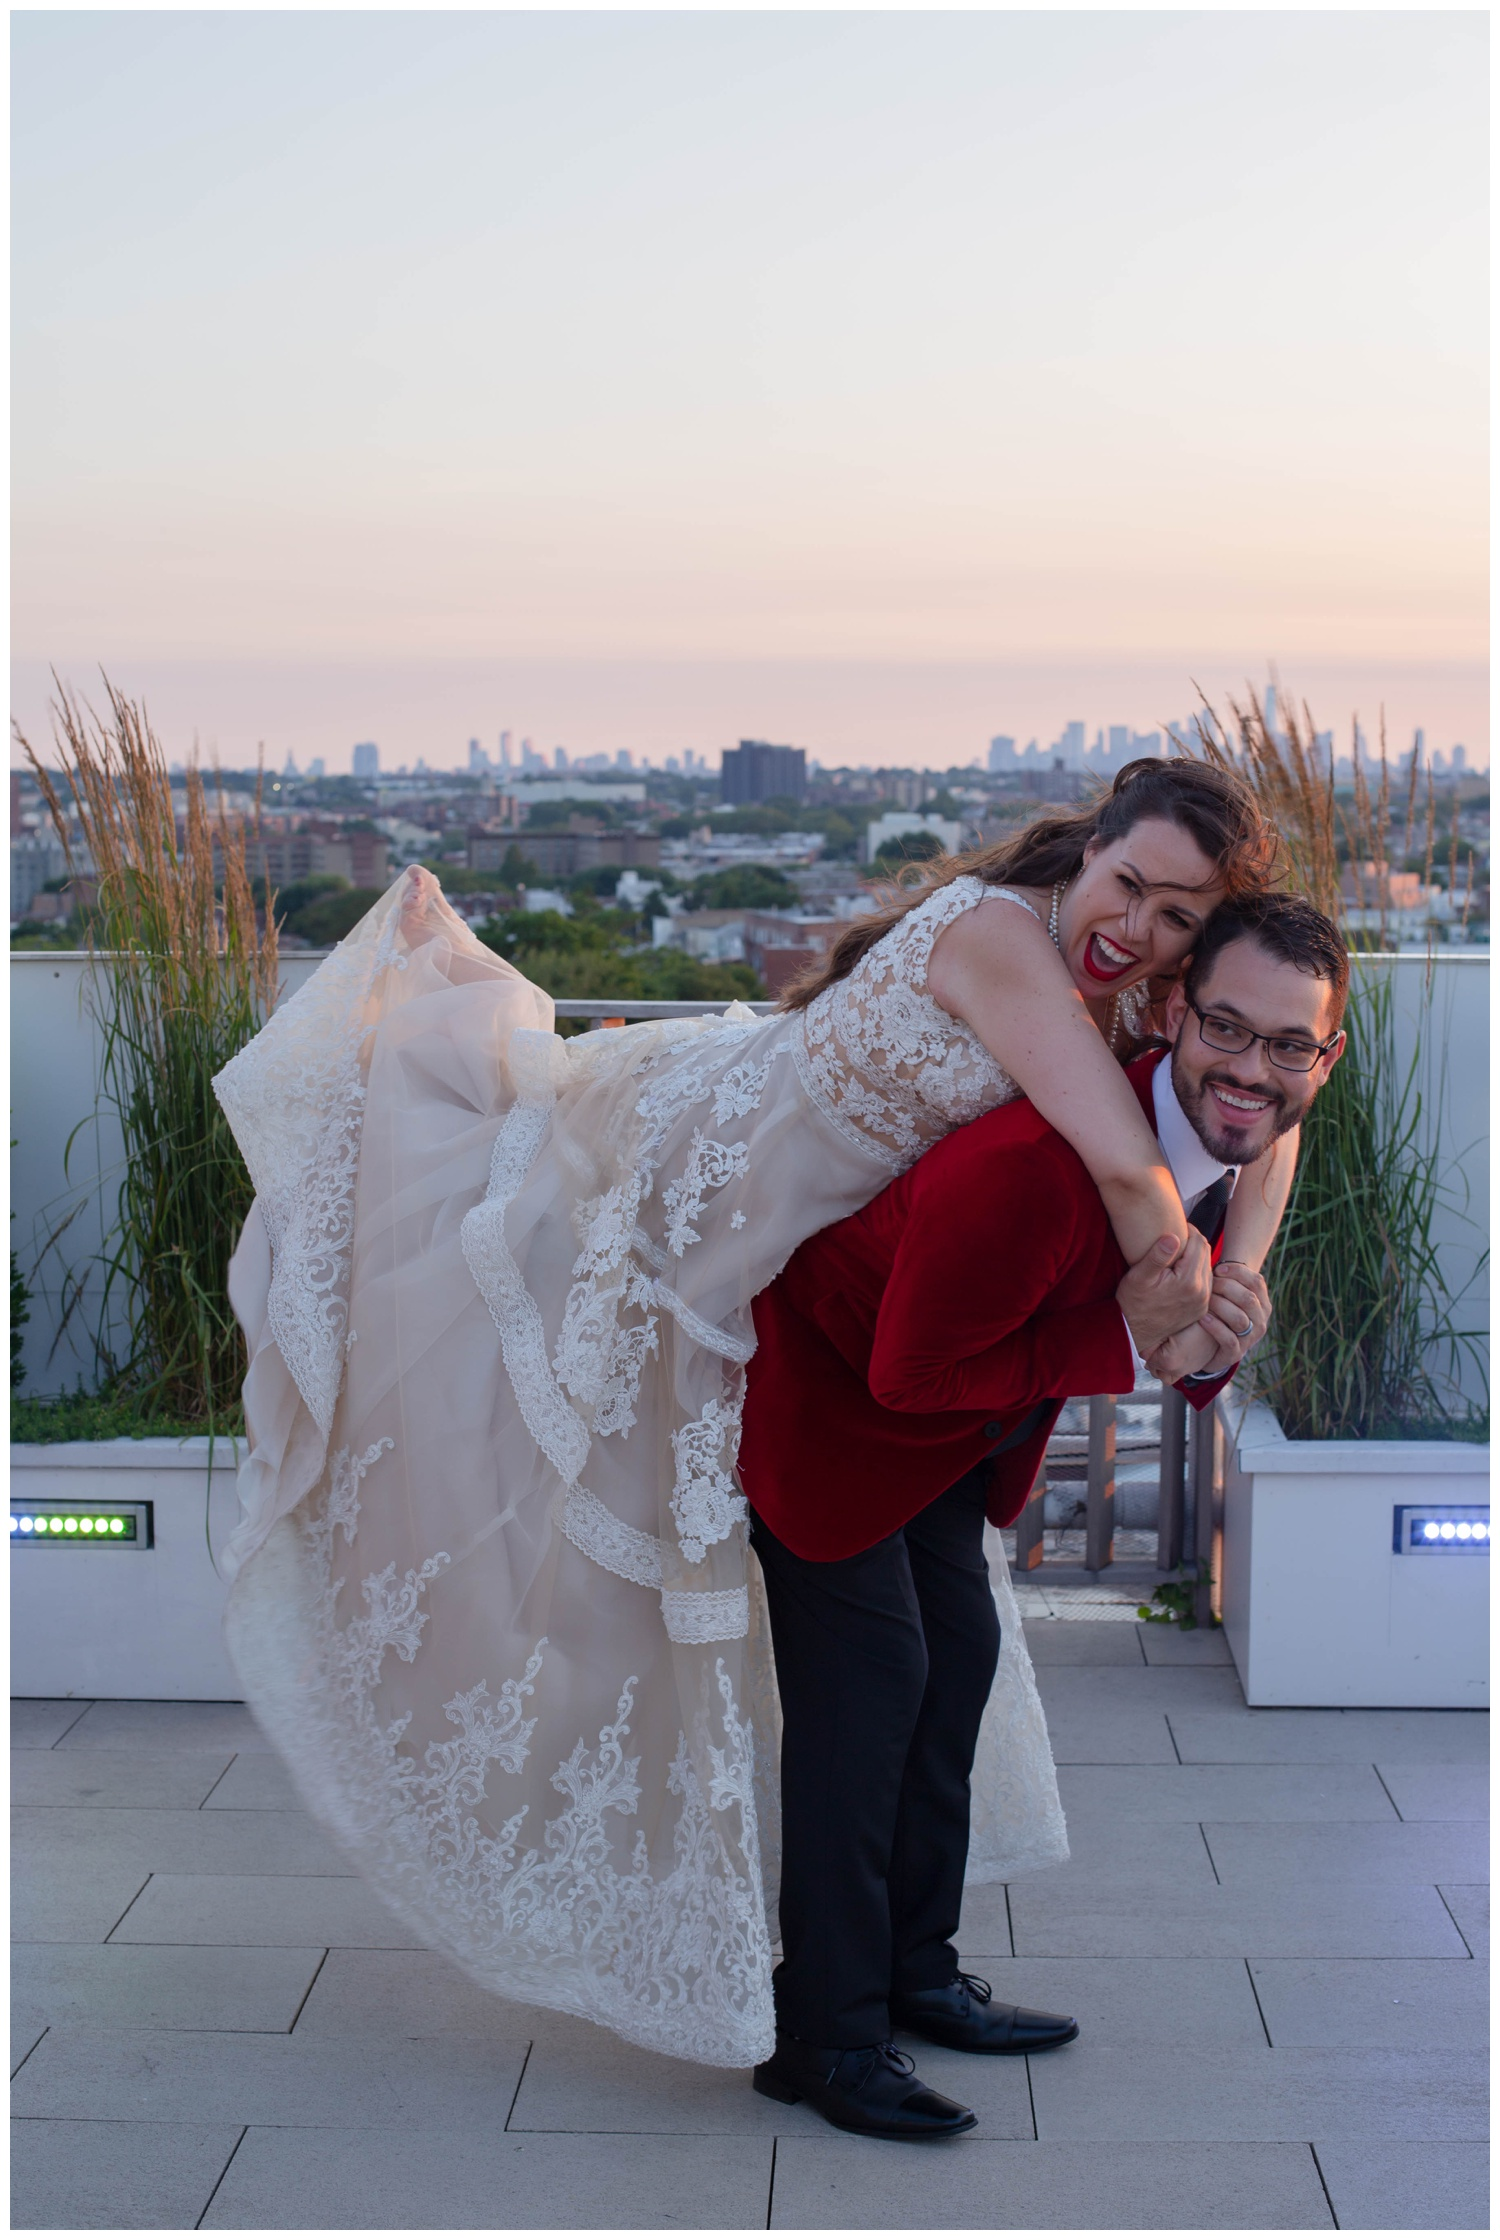 Kate-Alison-Photography-Sara-Kelly-Queens-Terrace-on-the-Park-Wedding-31.jpg